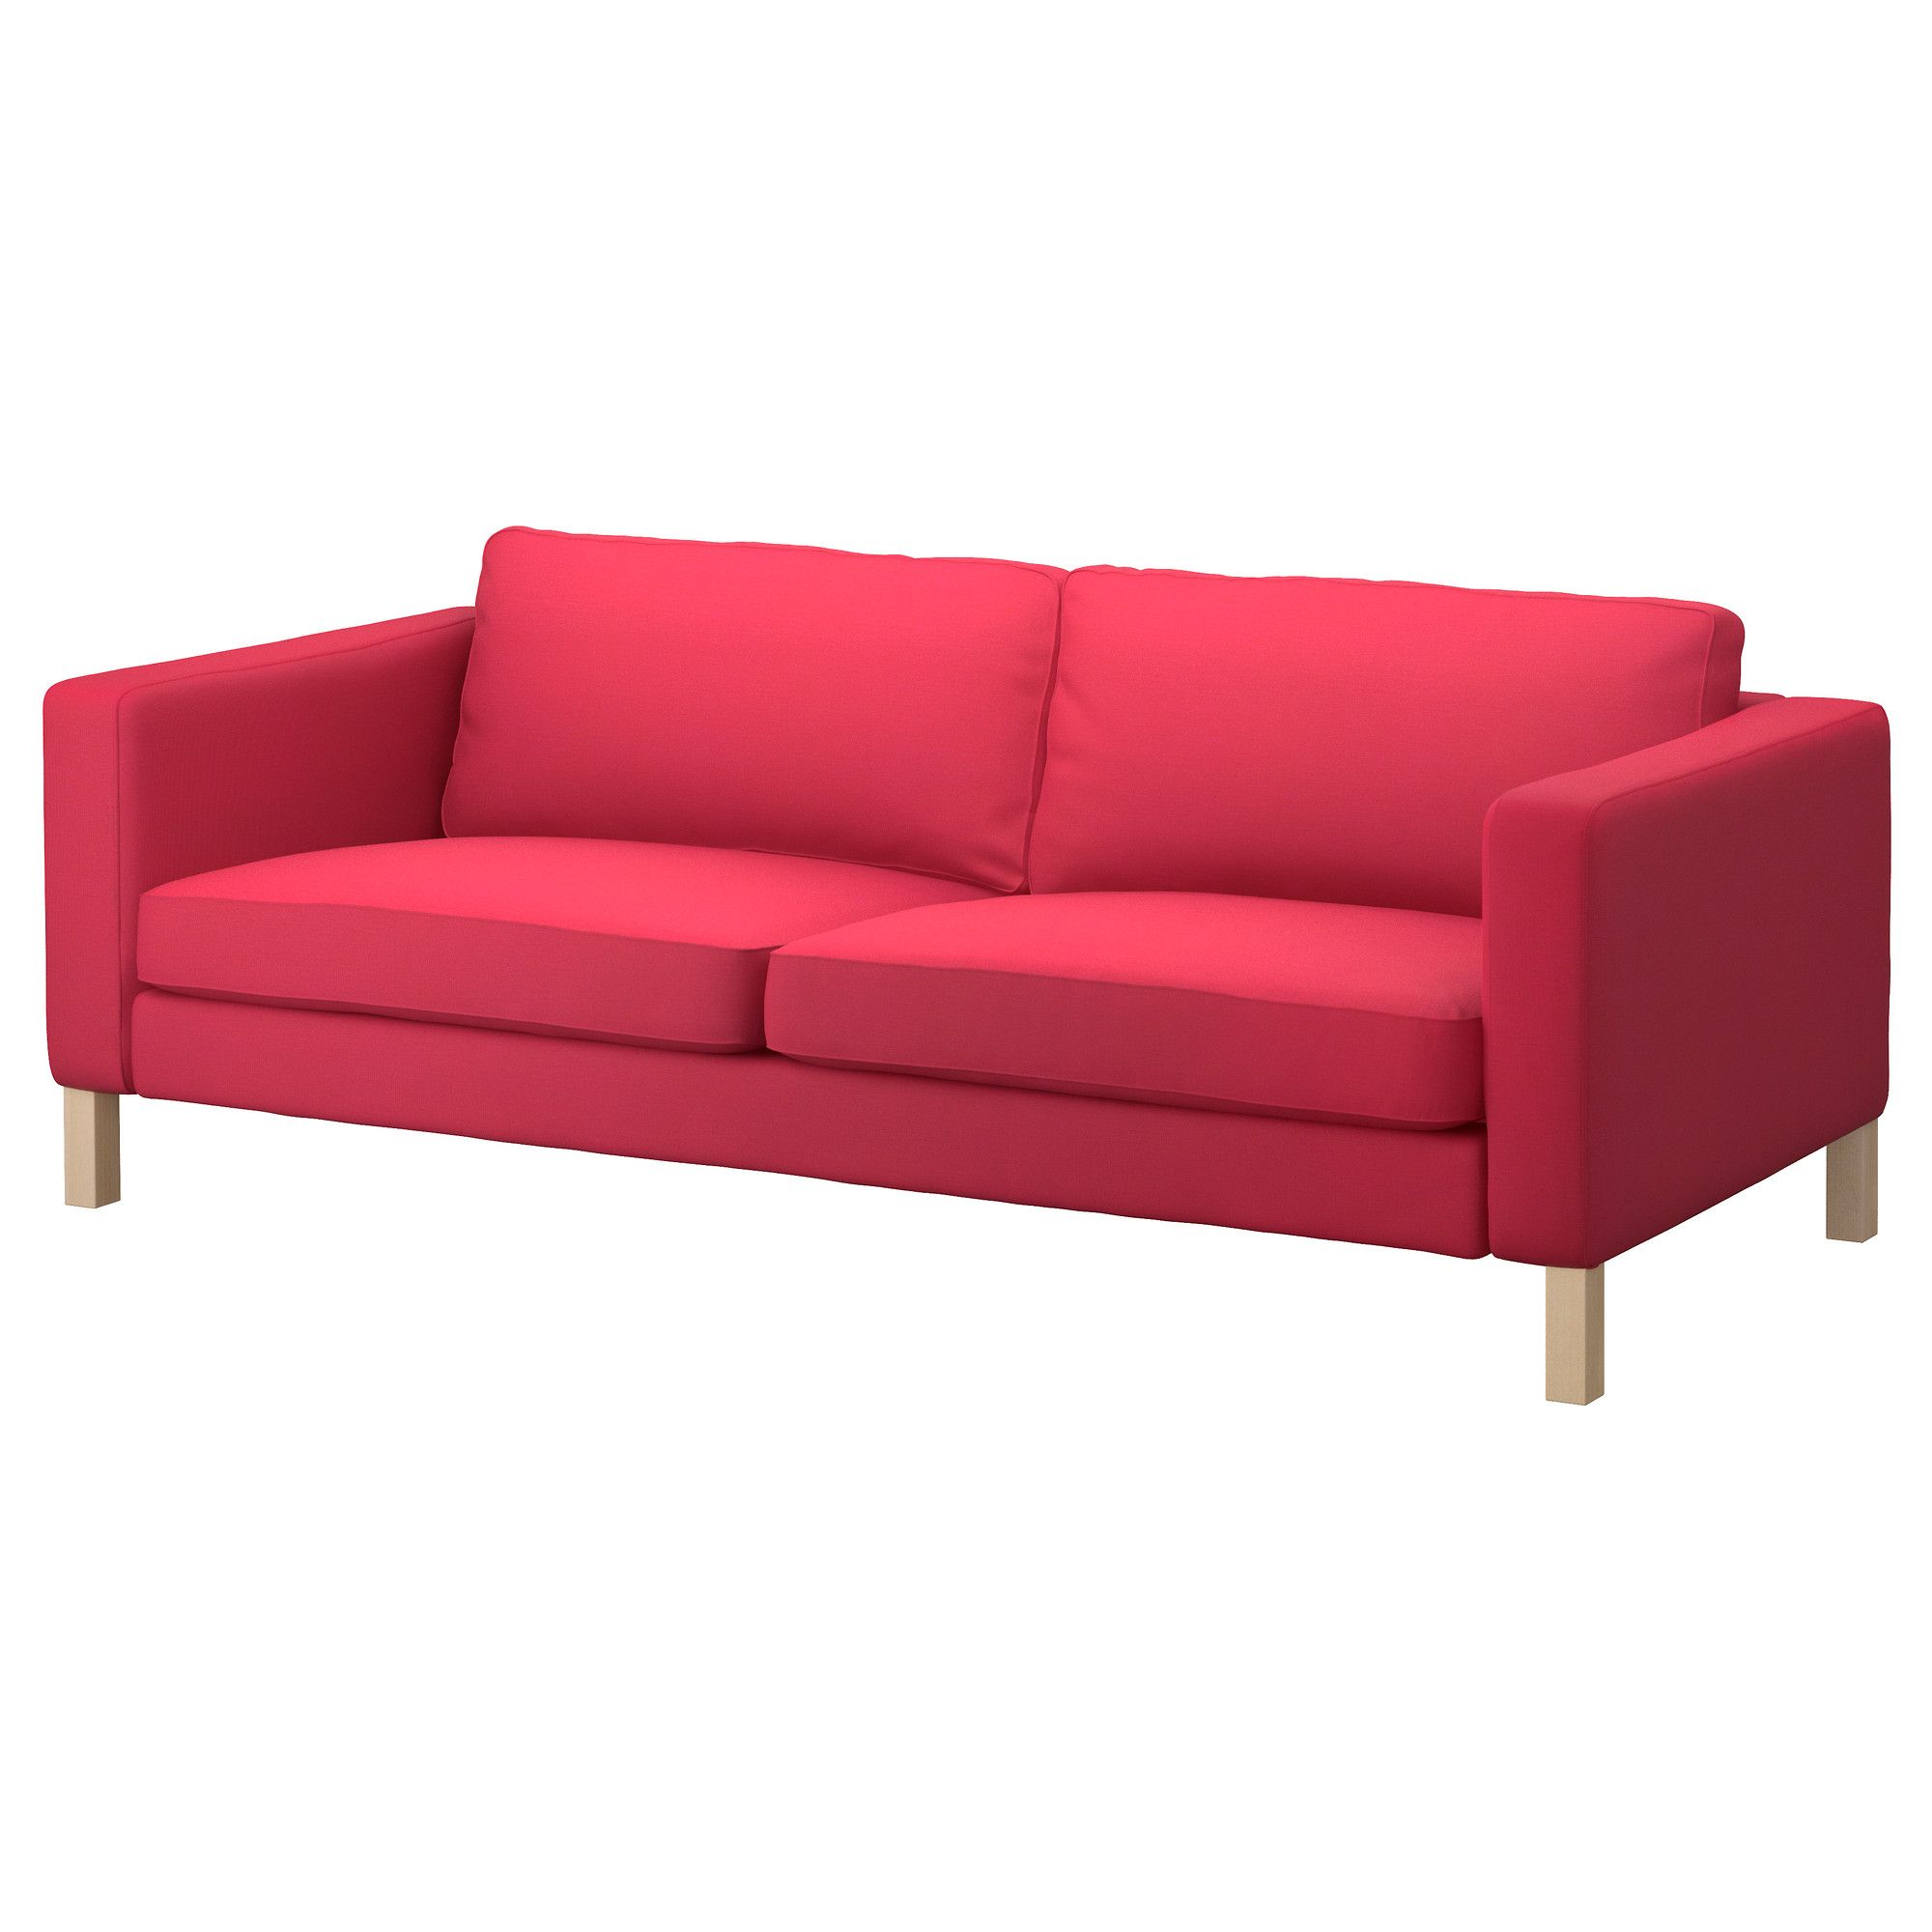 Ikea Us Furniture And Home Furnishings Karlstad Sofa Ikea Karlstad Sofa Ikea Bed